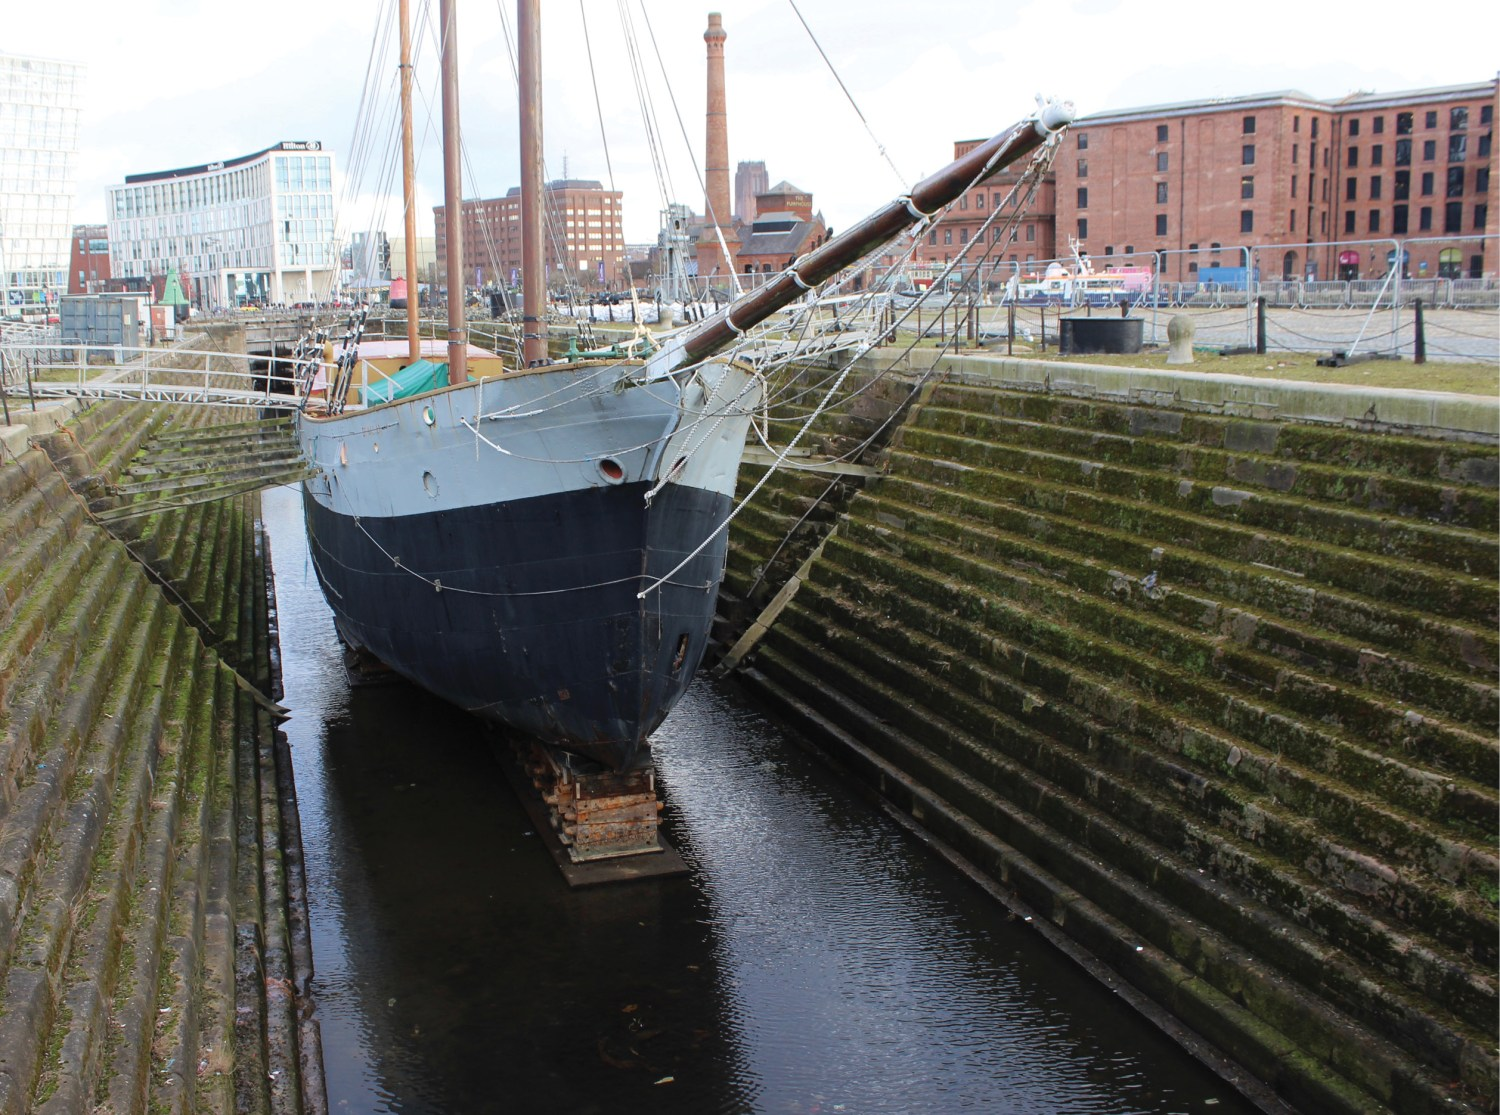 Above One of the two dry graving docks that are part of the Canning Docks in Liverpool. They were built by Henry Berry between 1765 and 1768 and served many ships involved in the Transatlantic slave trade.